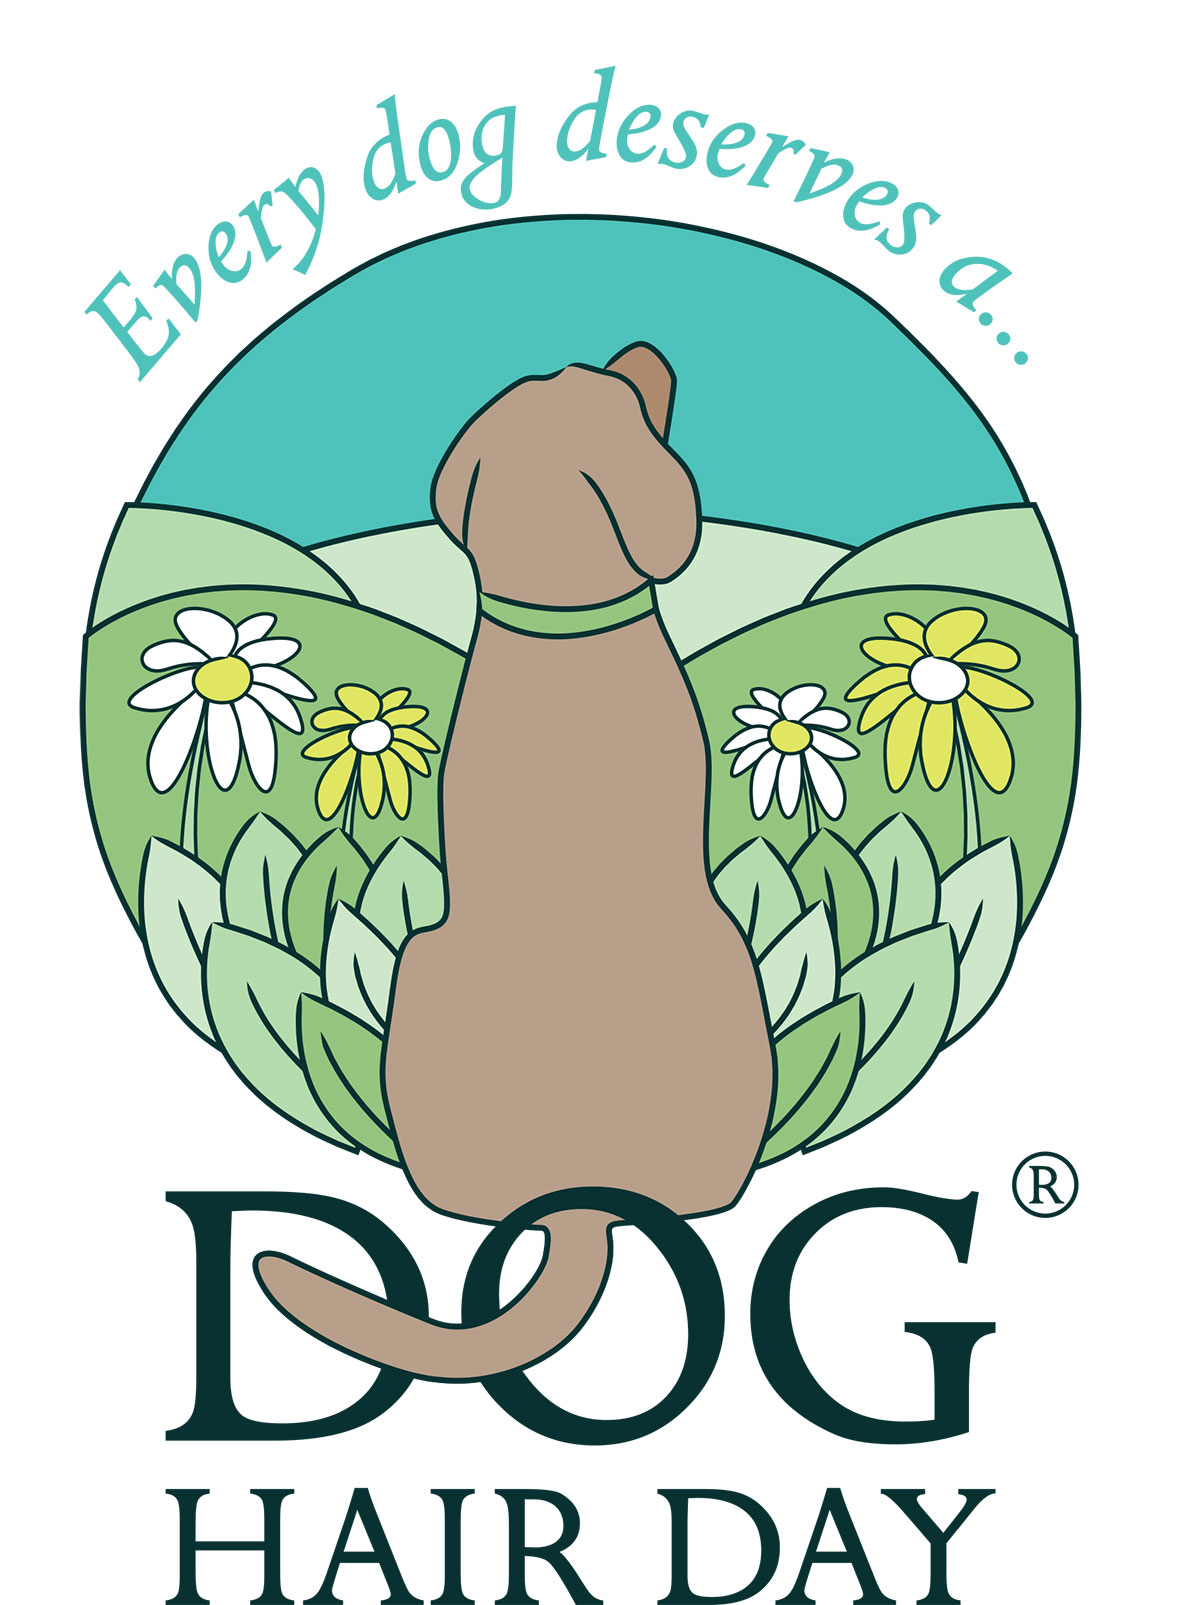 Dog hair Day logo